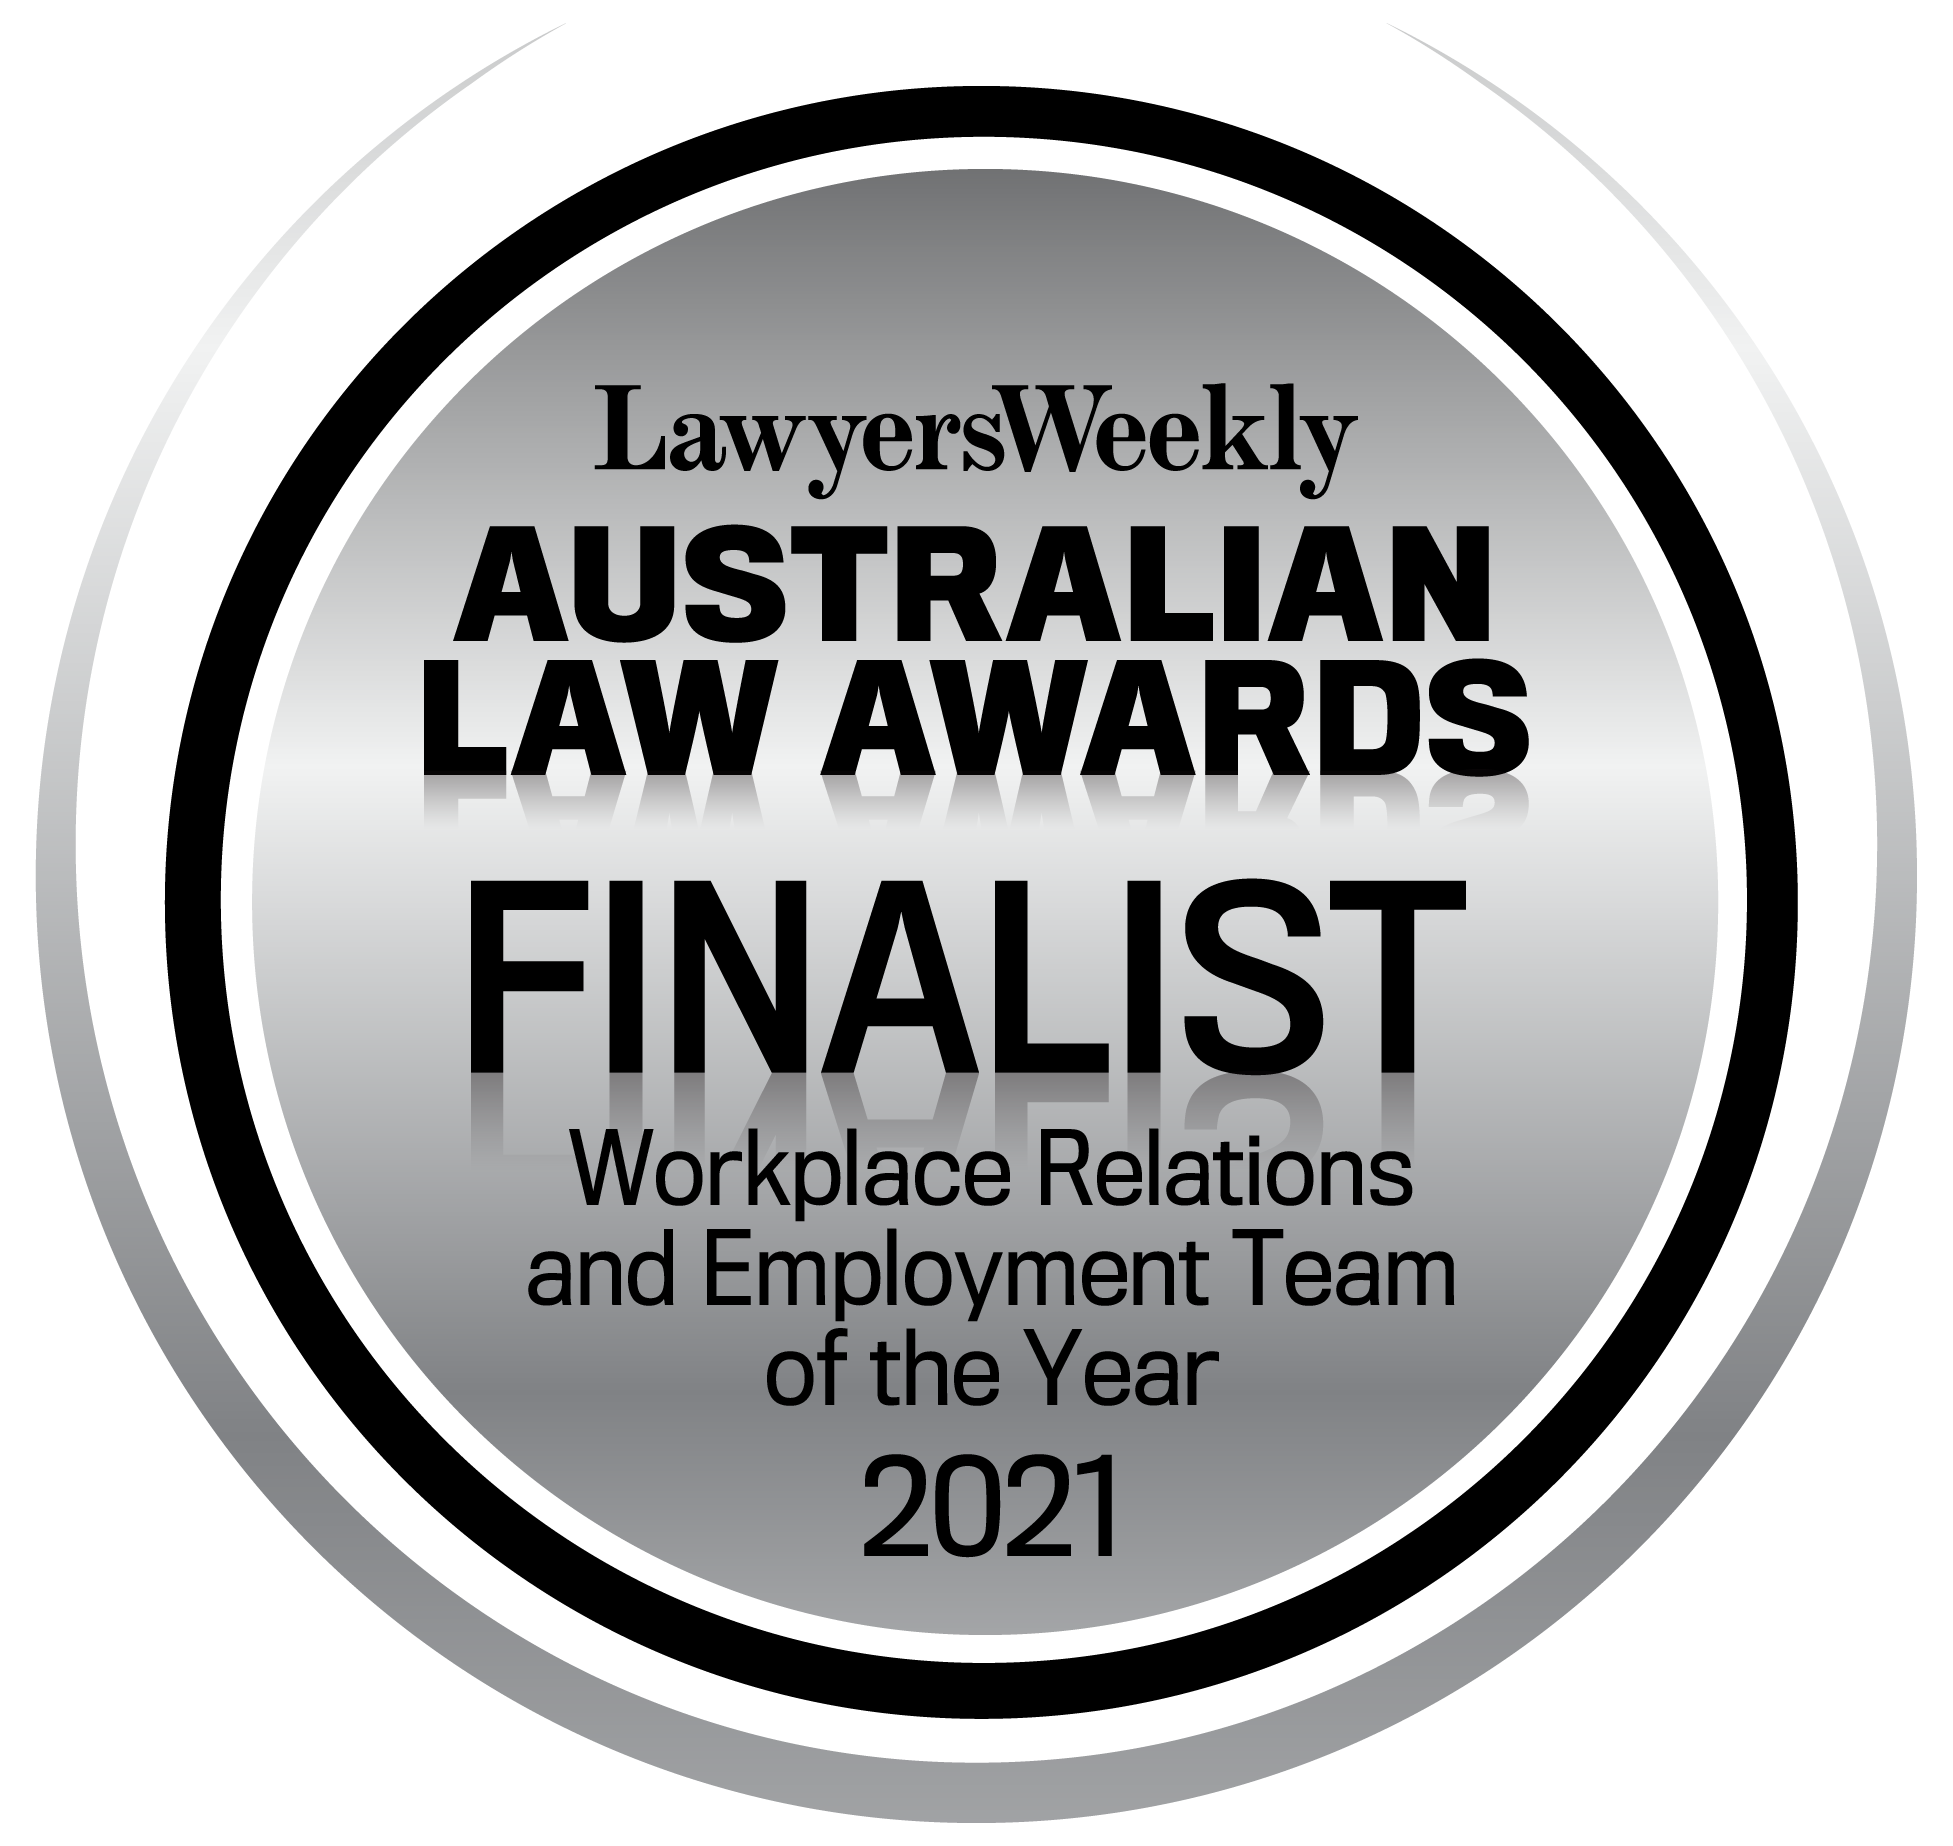 ALA_2021_Finalist_Workplace Relations and Employment Team of the Year